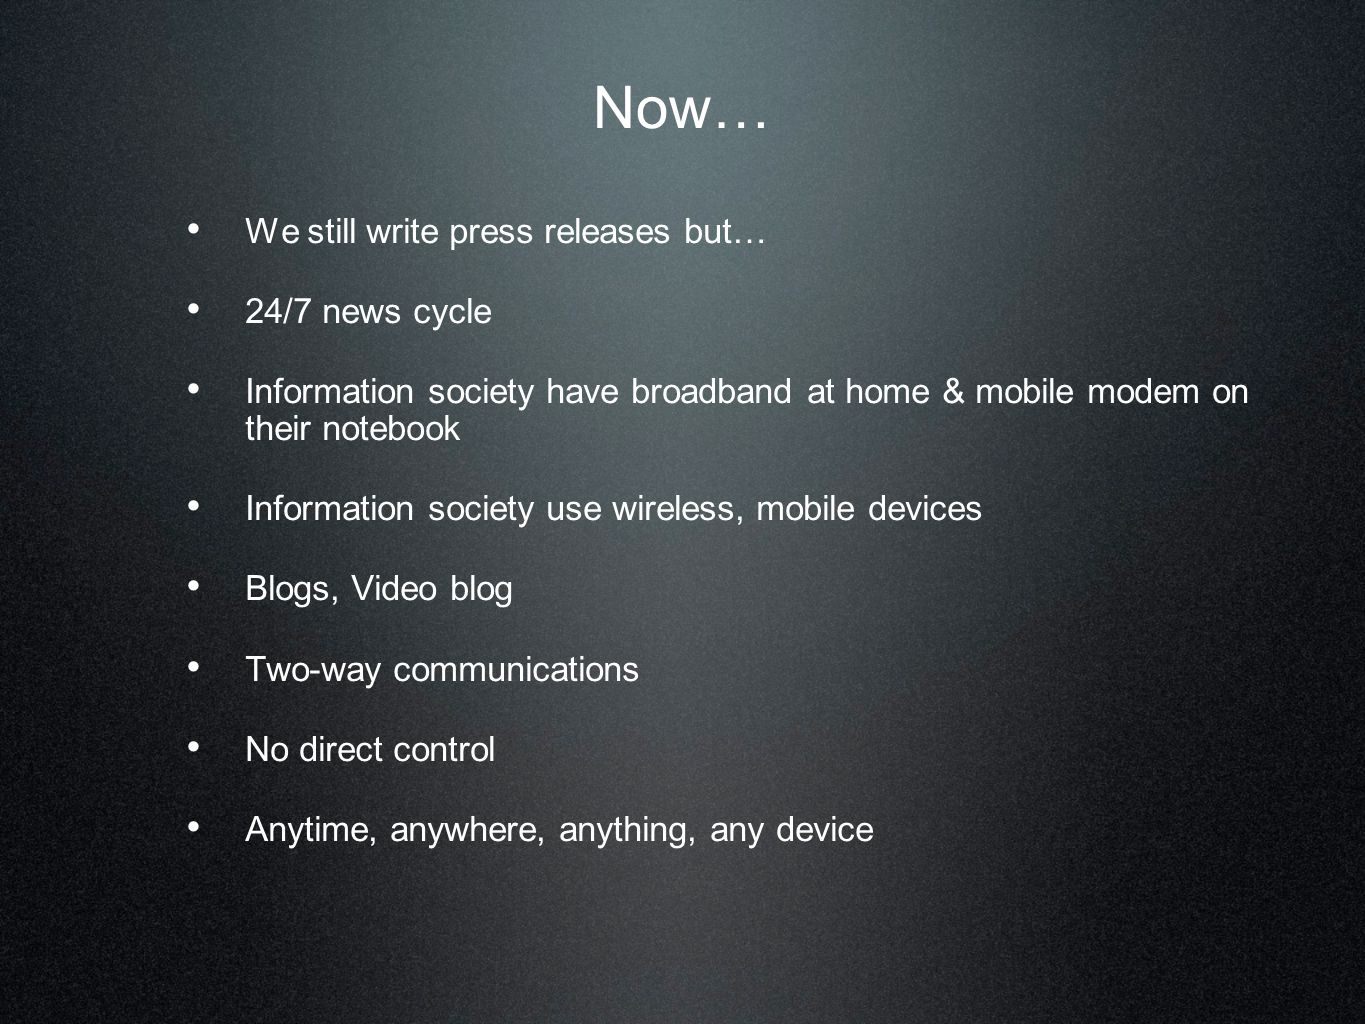 Now… We still write press releases but… 24/7 news cycle Information society have broadband at home & mobile modem on their notebook Information societ